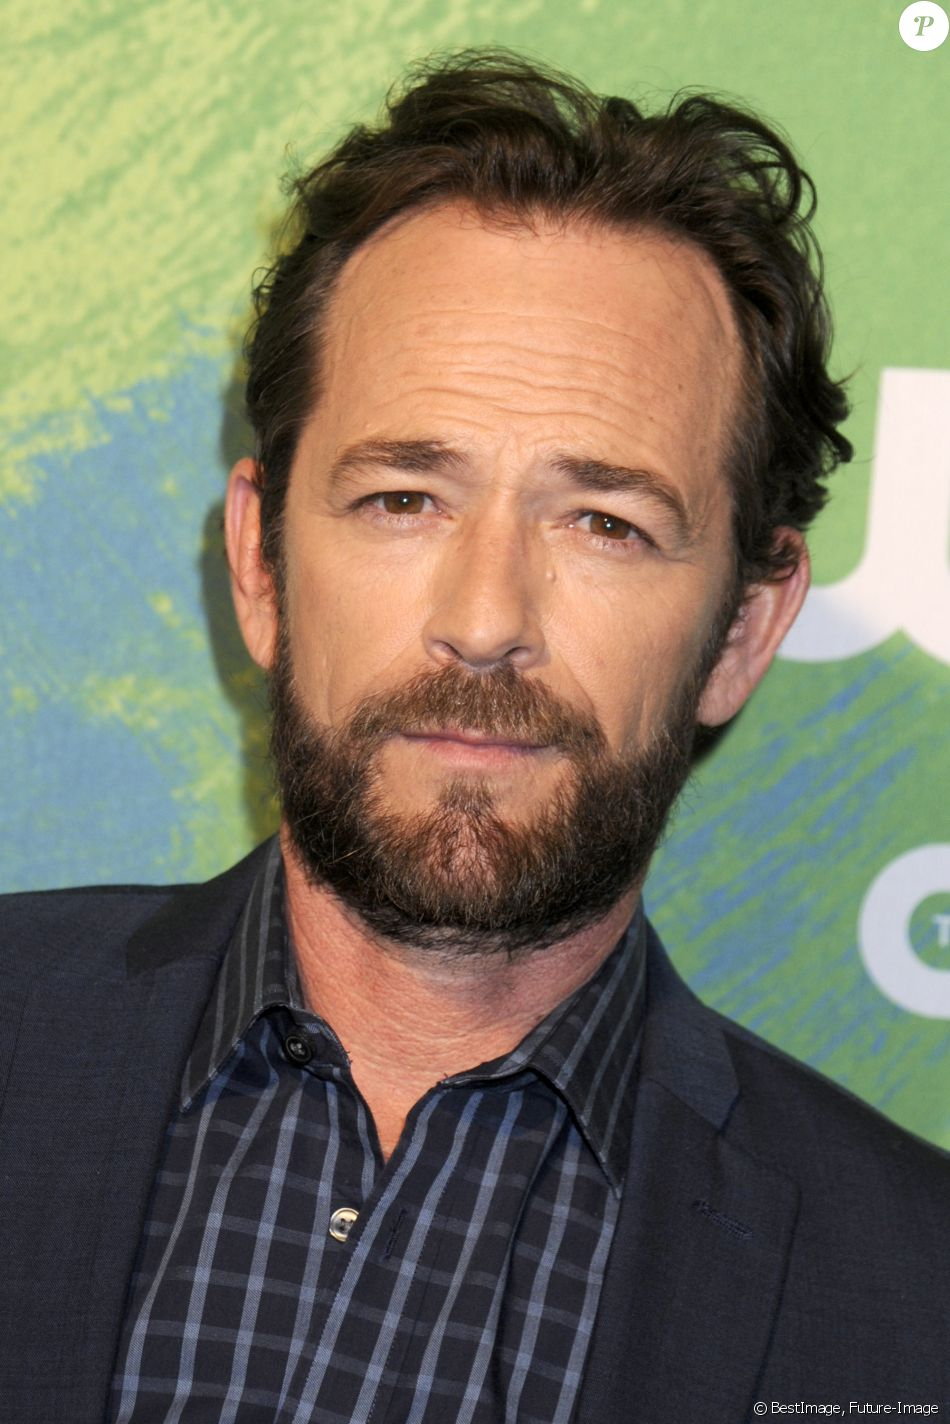 Luke Perry à la soirée CW Network's 2016 Upfront à l'hôtel The London à New York, le 19 mai 2016 © Future-Image via Bestimage